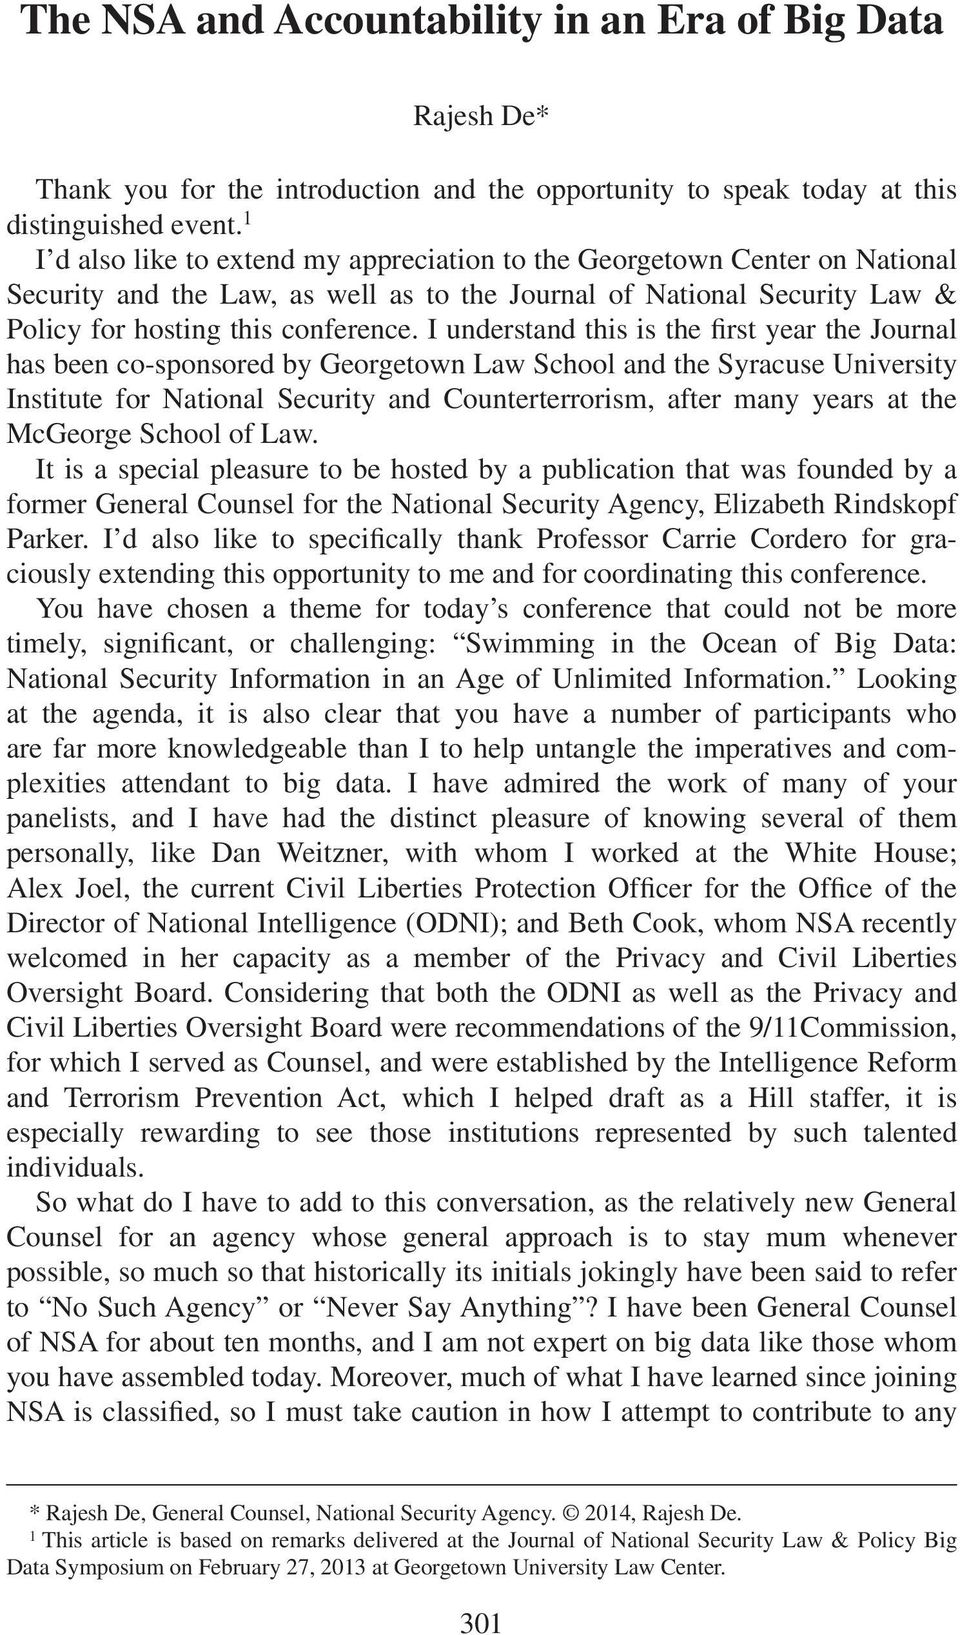 I understand this is the first year the Journal has been co-sponsored by Georgetown Law School and the Syracuse University Institute for National Security and Counterterrorism, after many years at